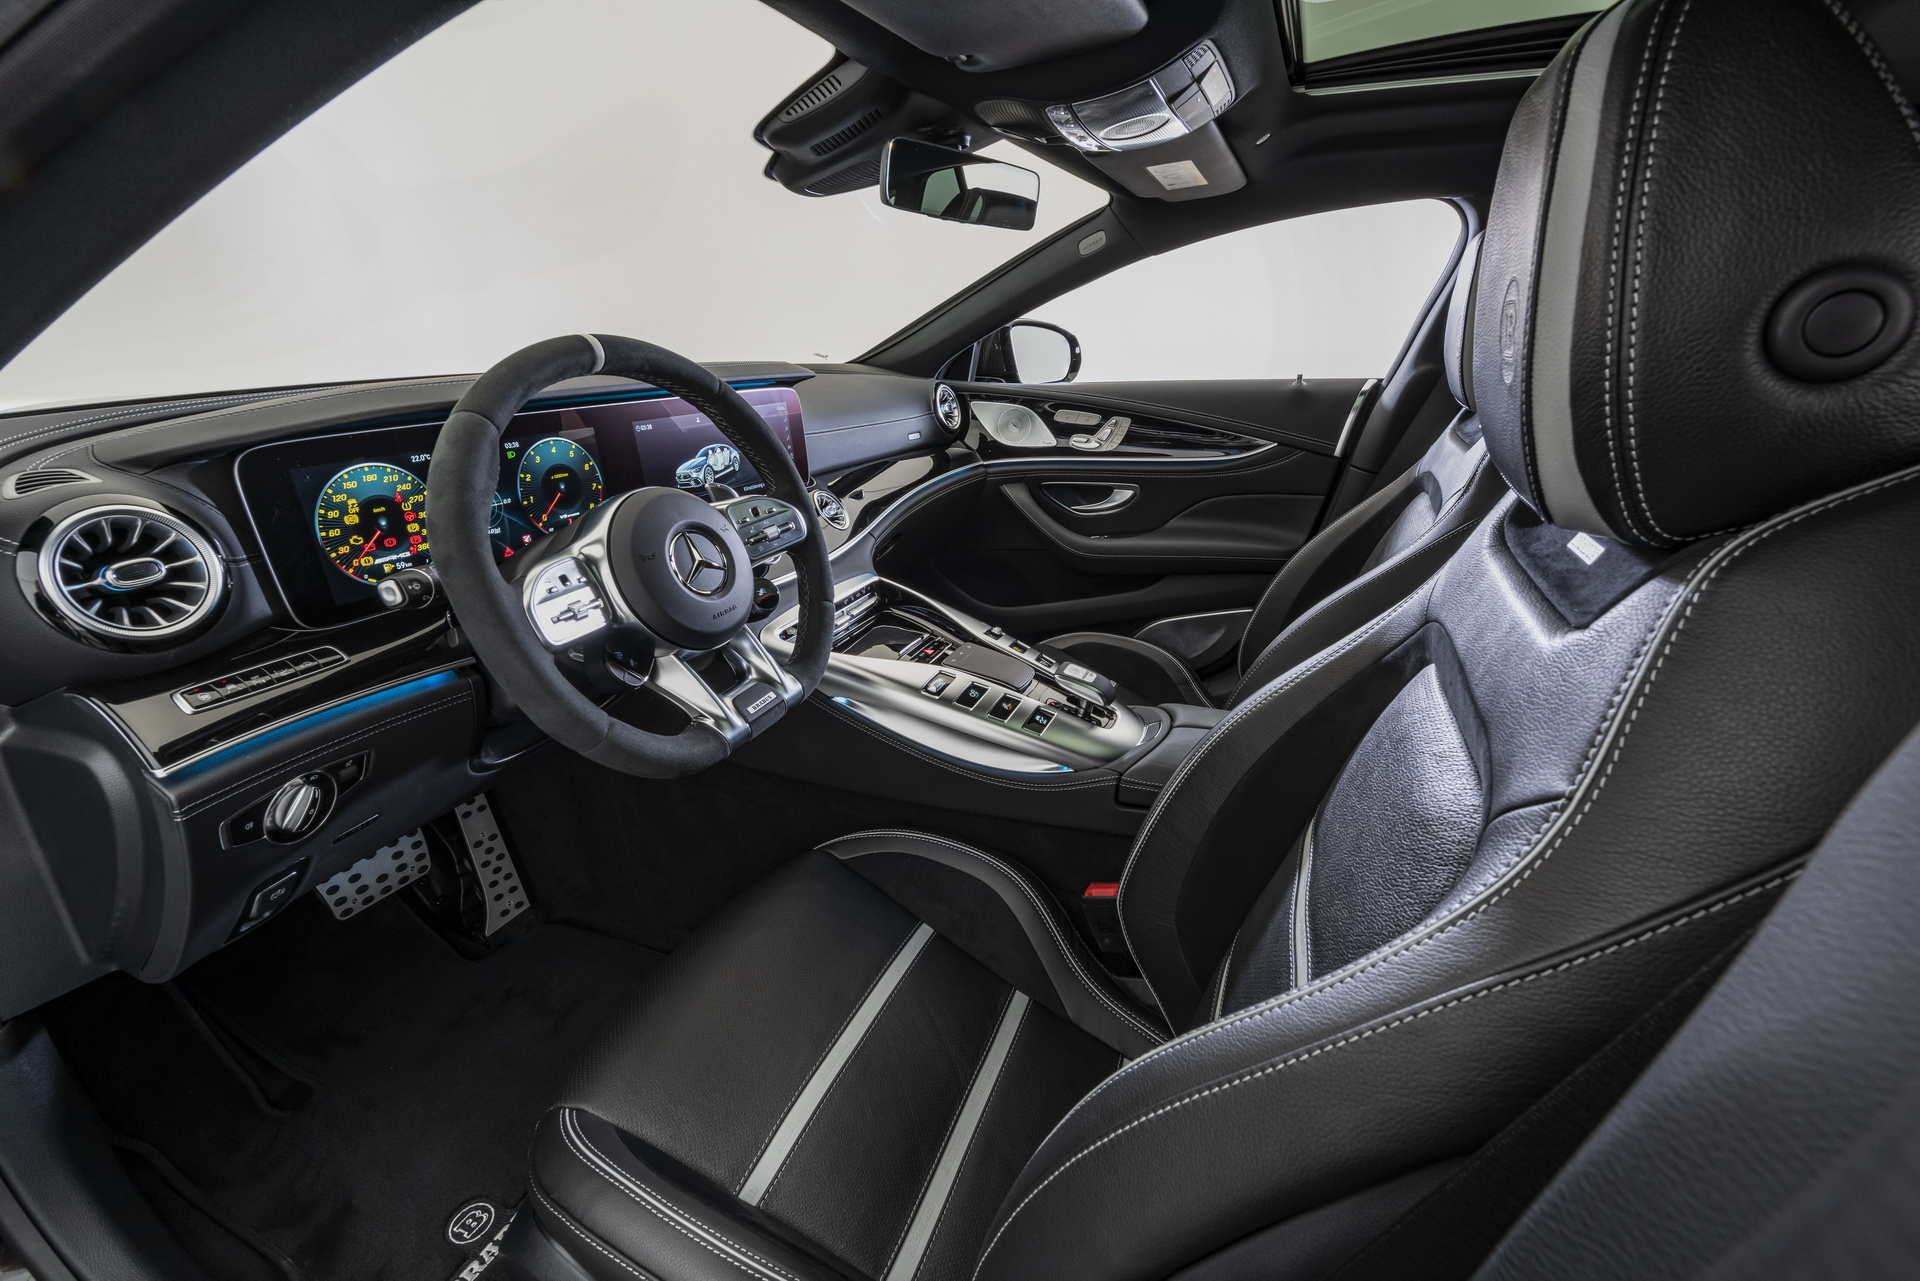 Brabus GT63 S AMG Steering Wheel